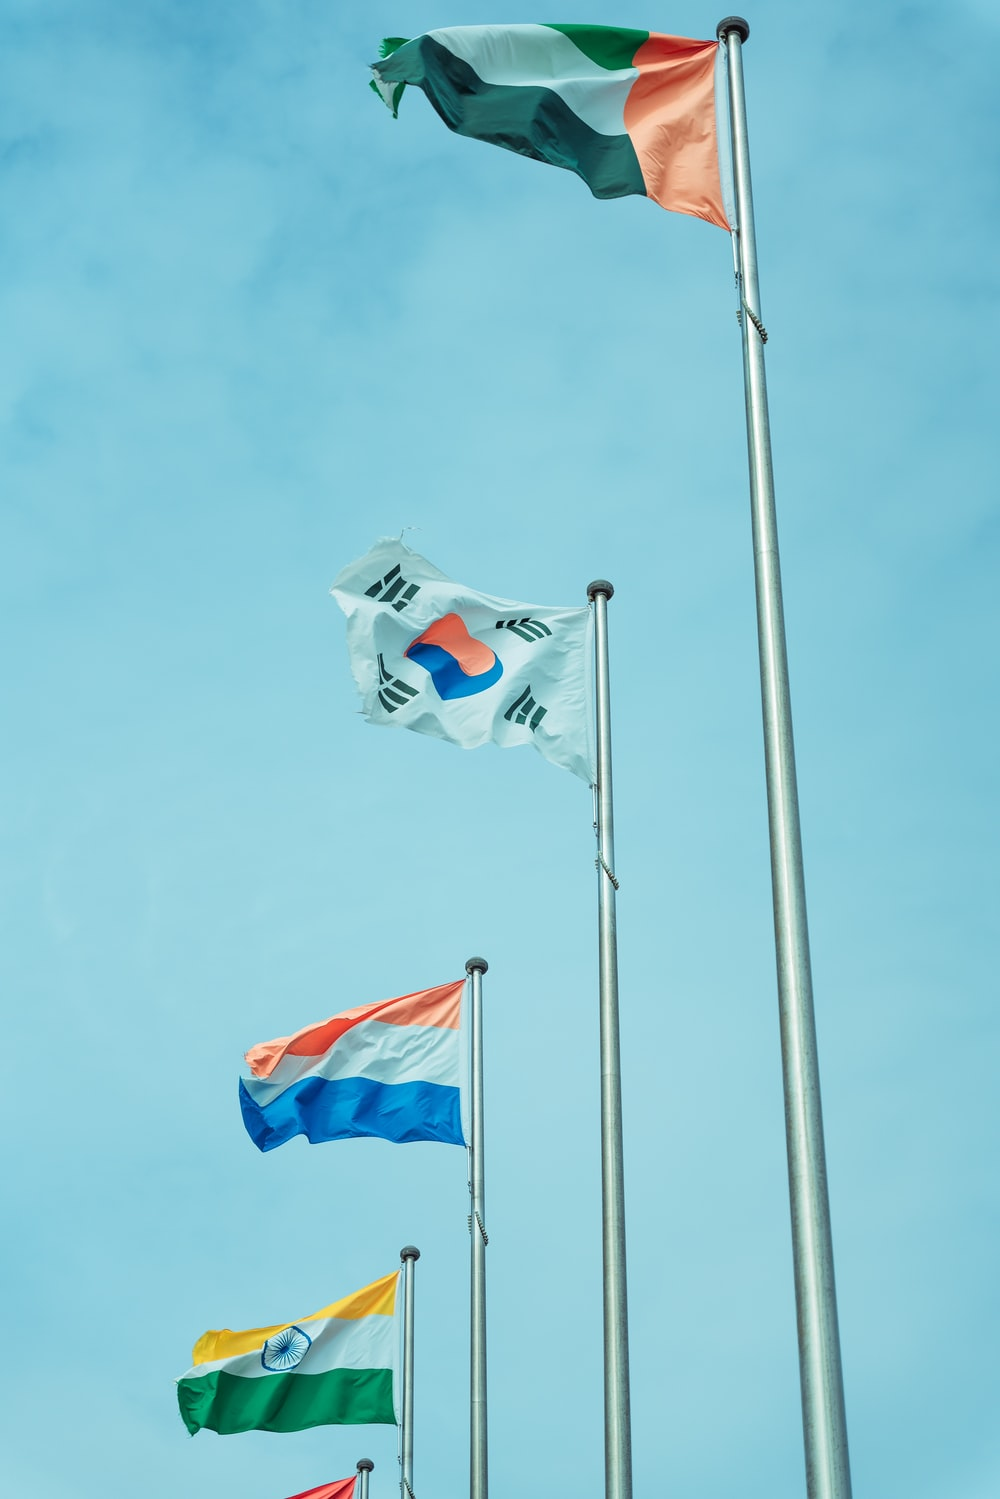 flag of us a on pole during daytime